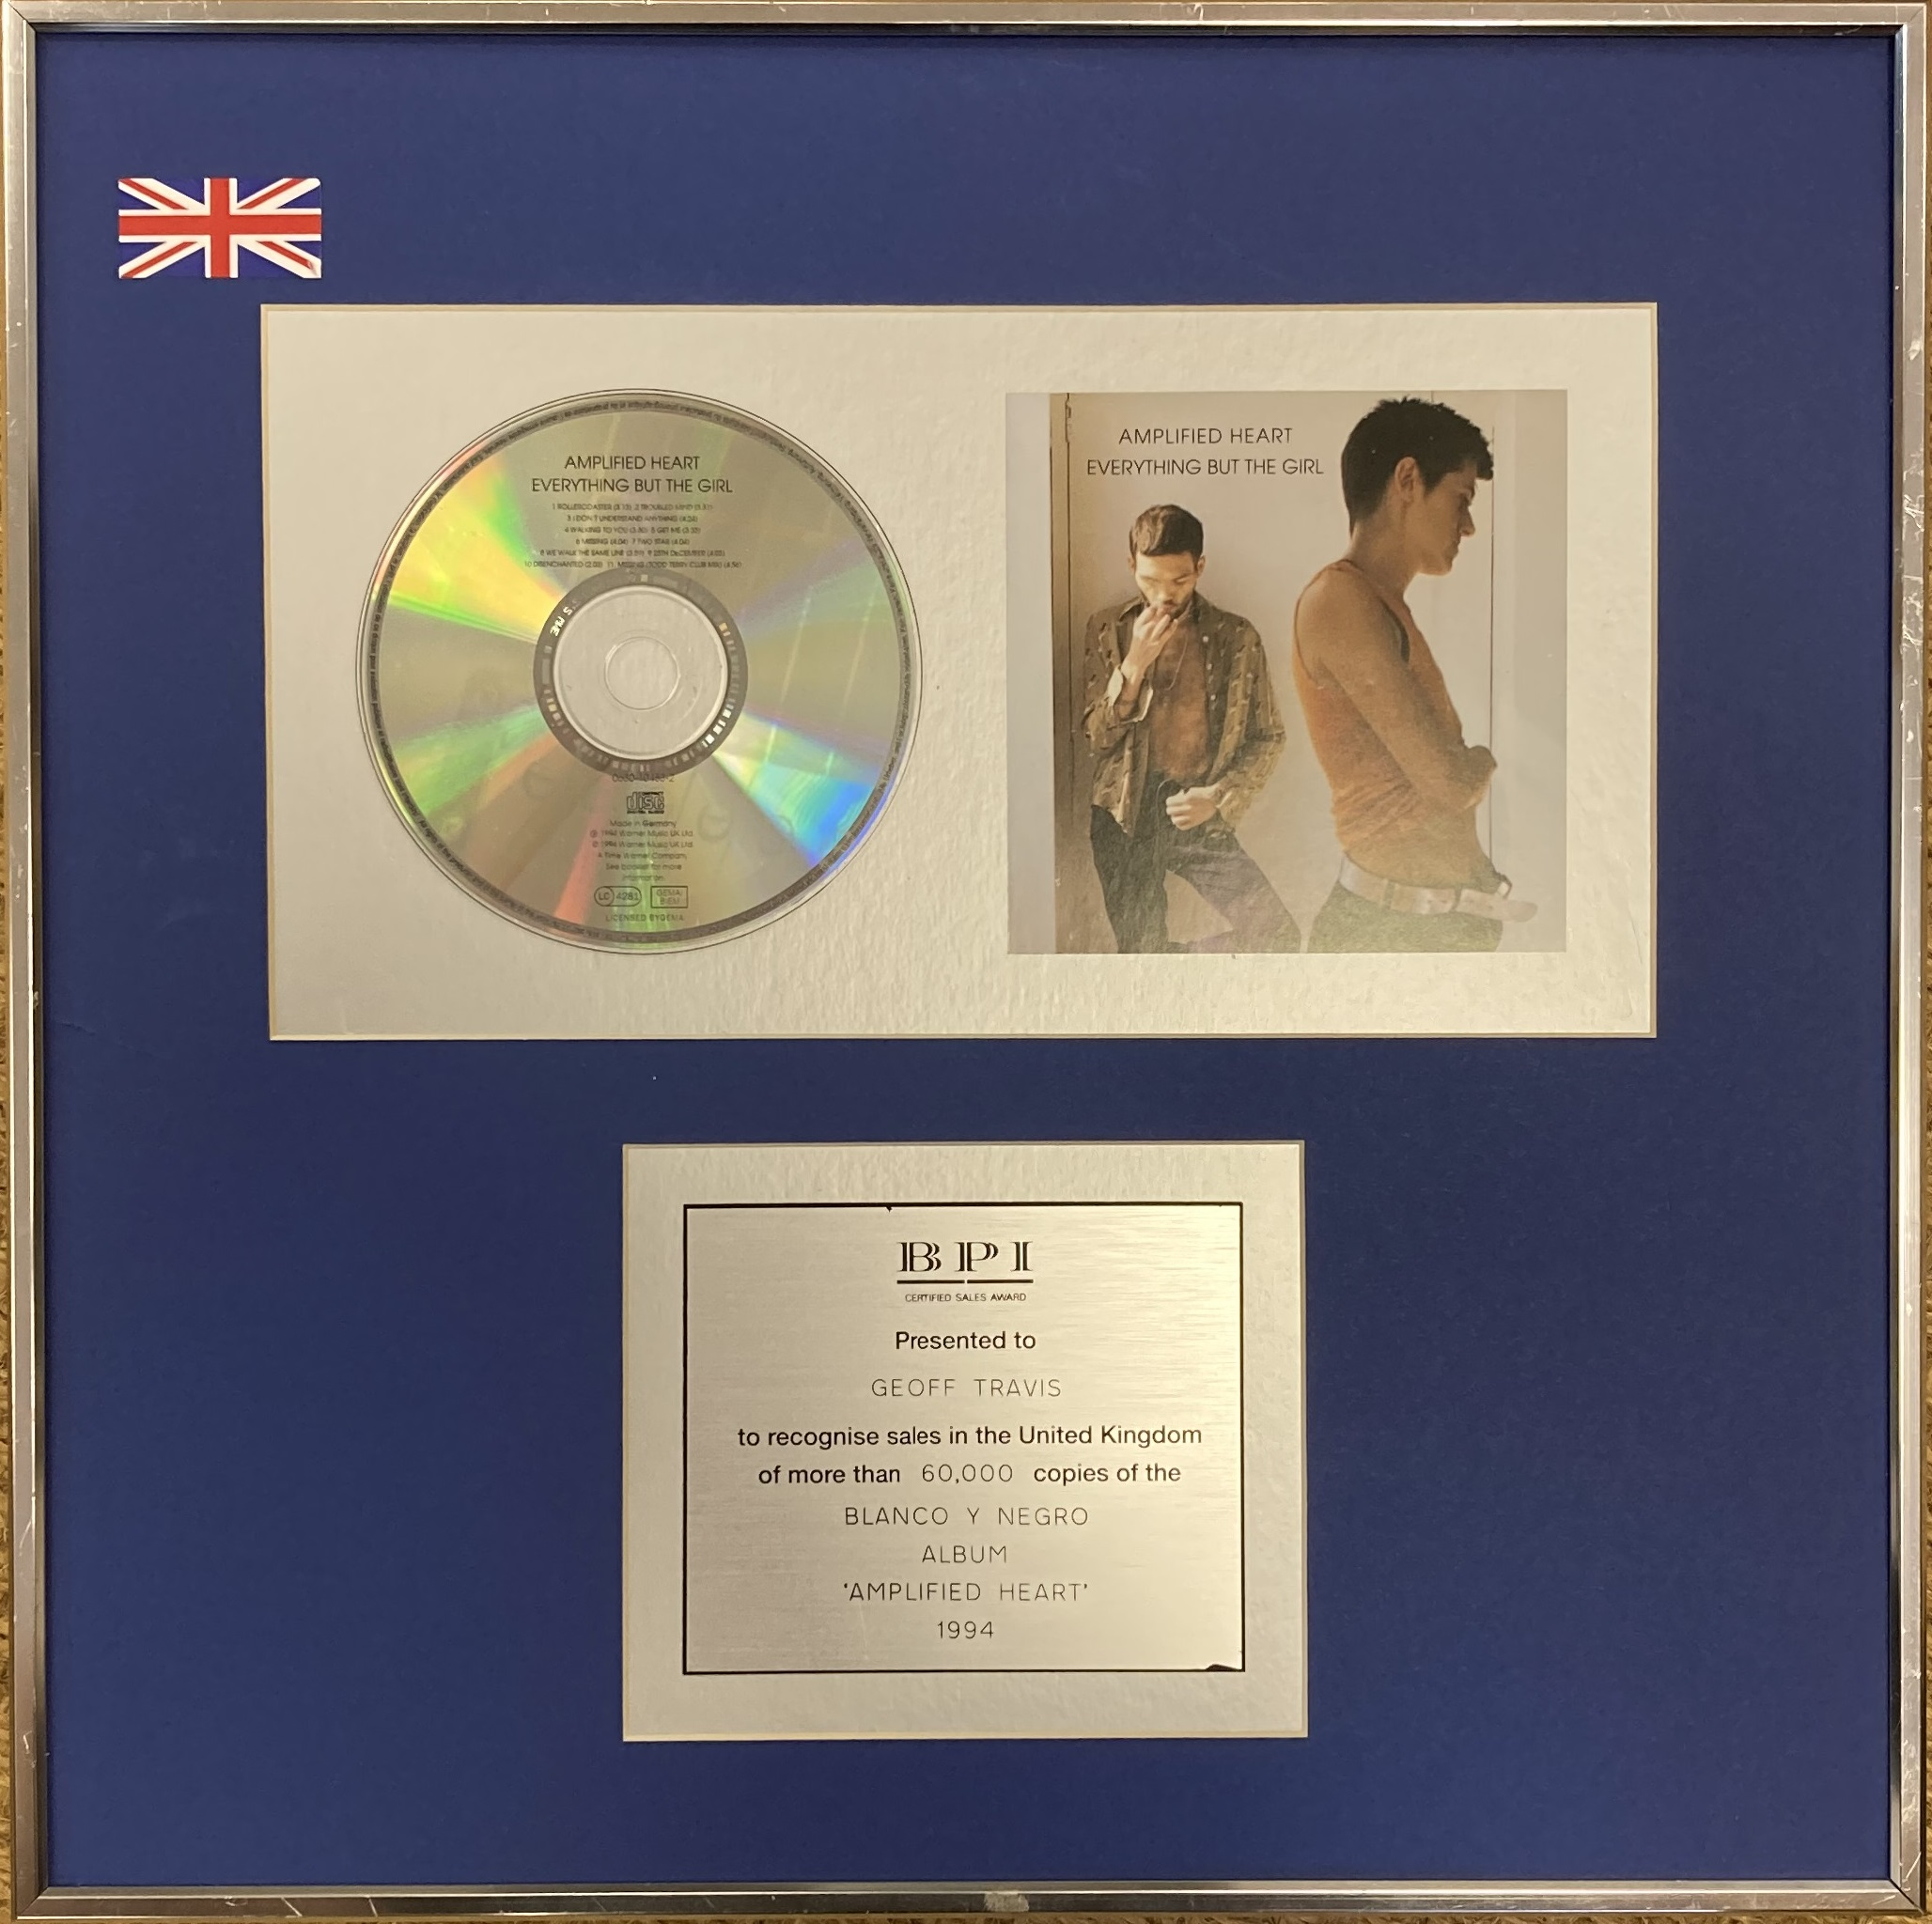 EVERYTHING BUT THE GIRL BPI DISCS. - Image 2 of 5